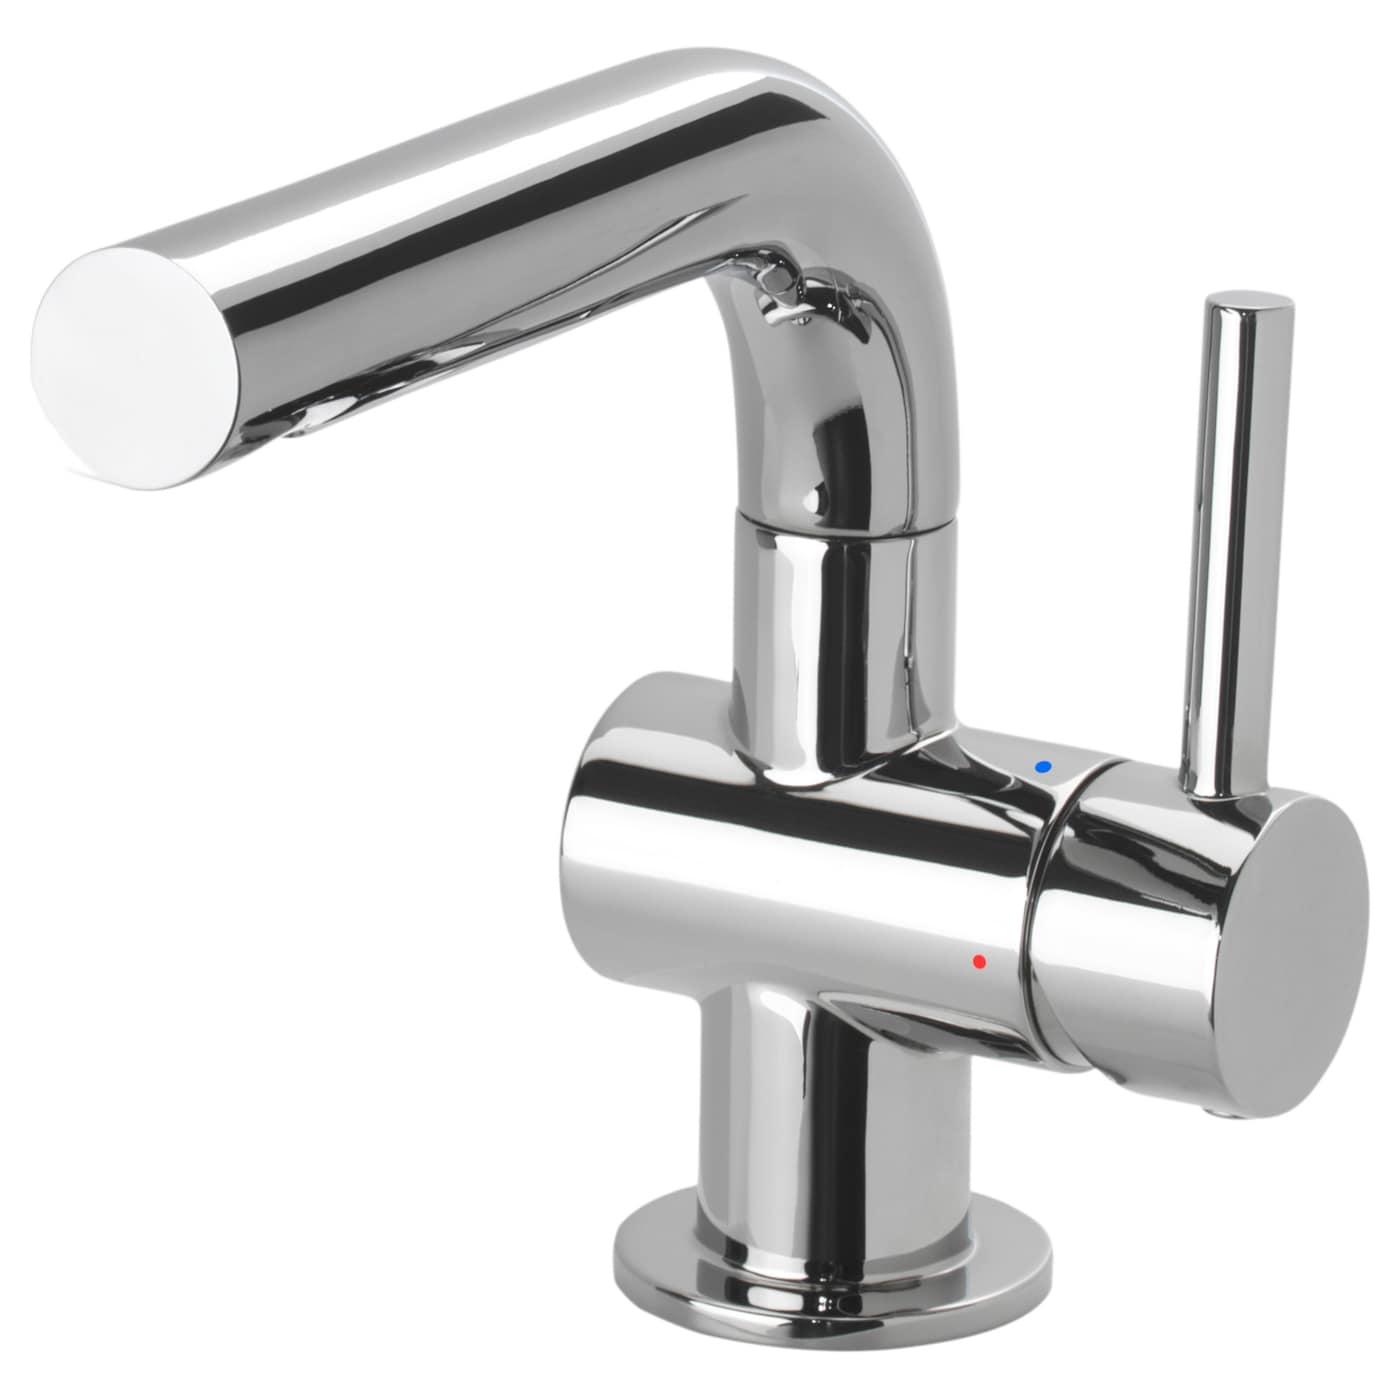 Toobi Tall SingleHole Bathroom Sink Faucet by Kohler